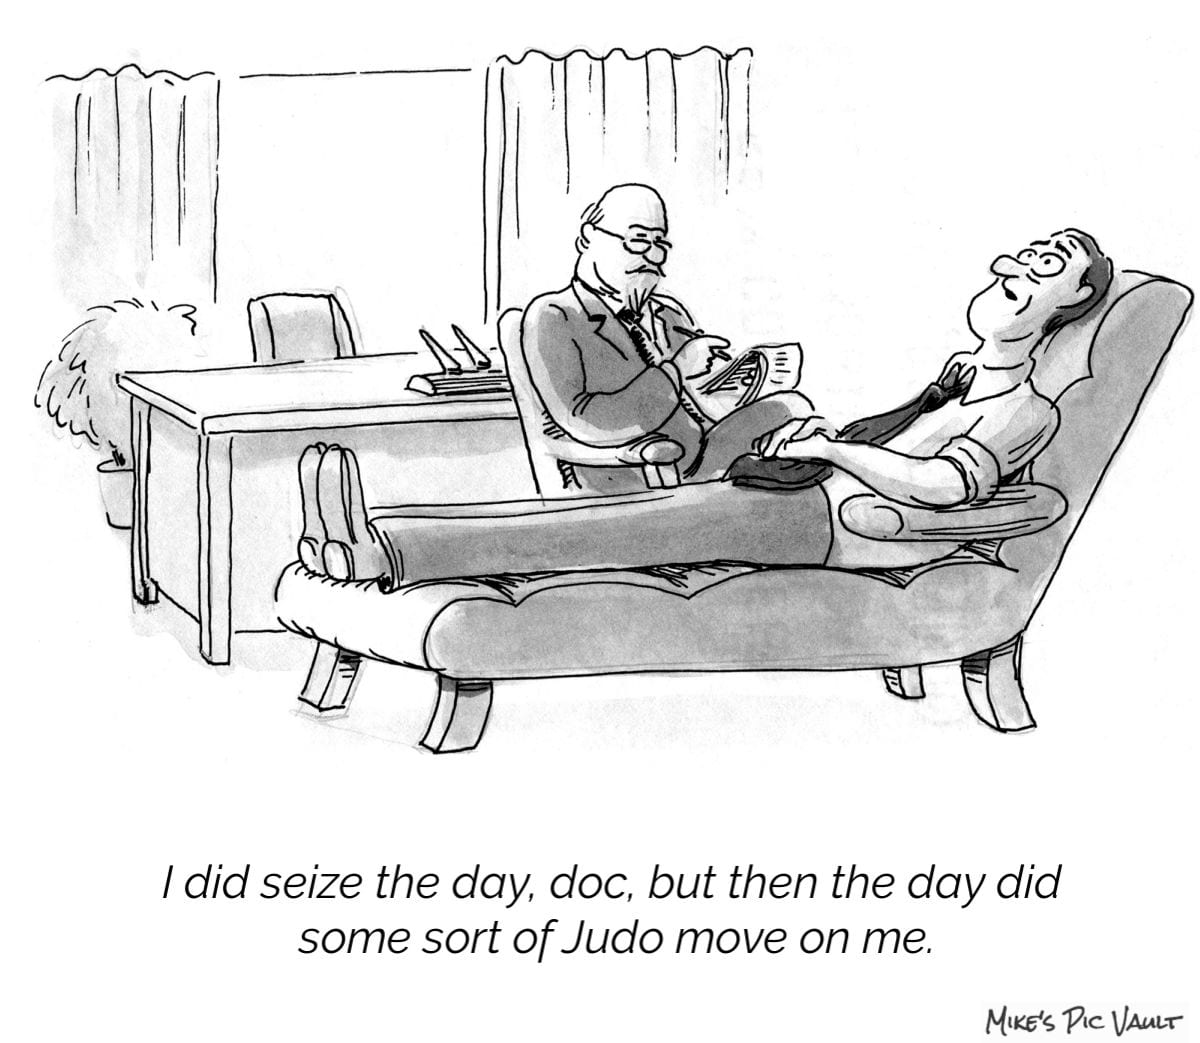 seize-the-day-cartoon-pic-vault